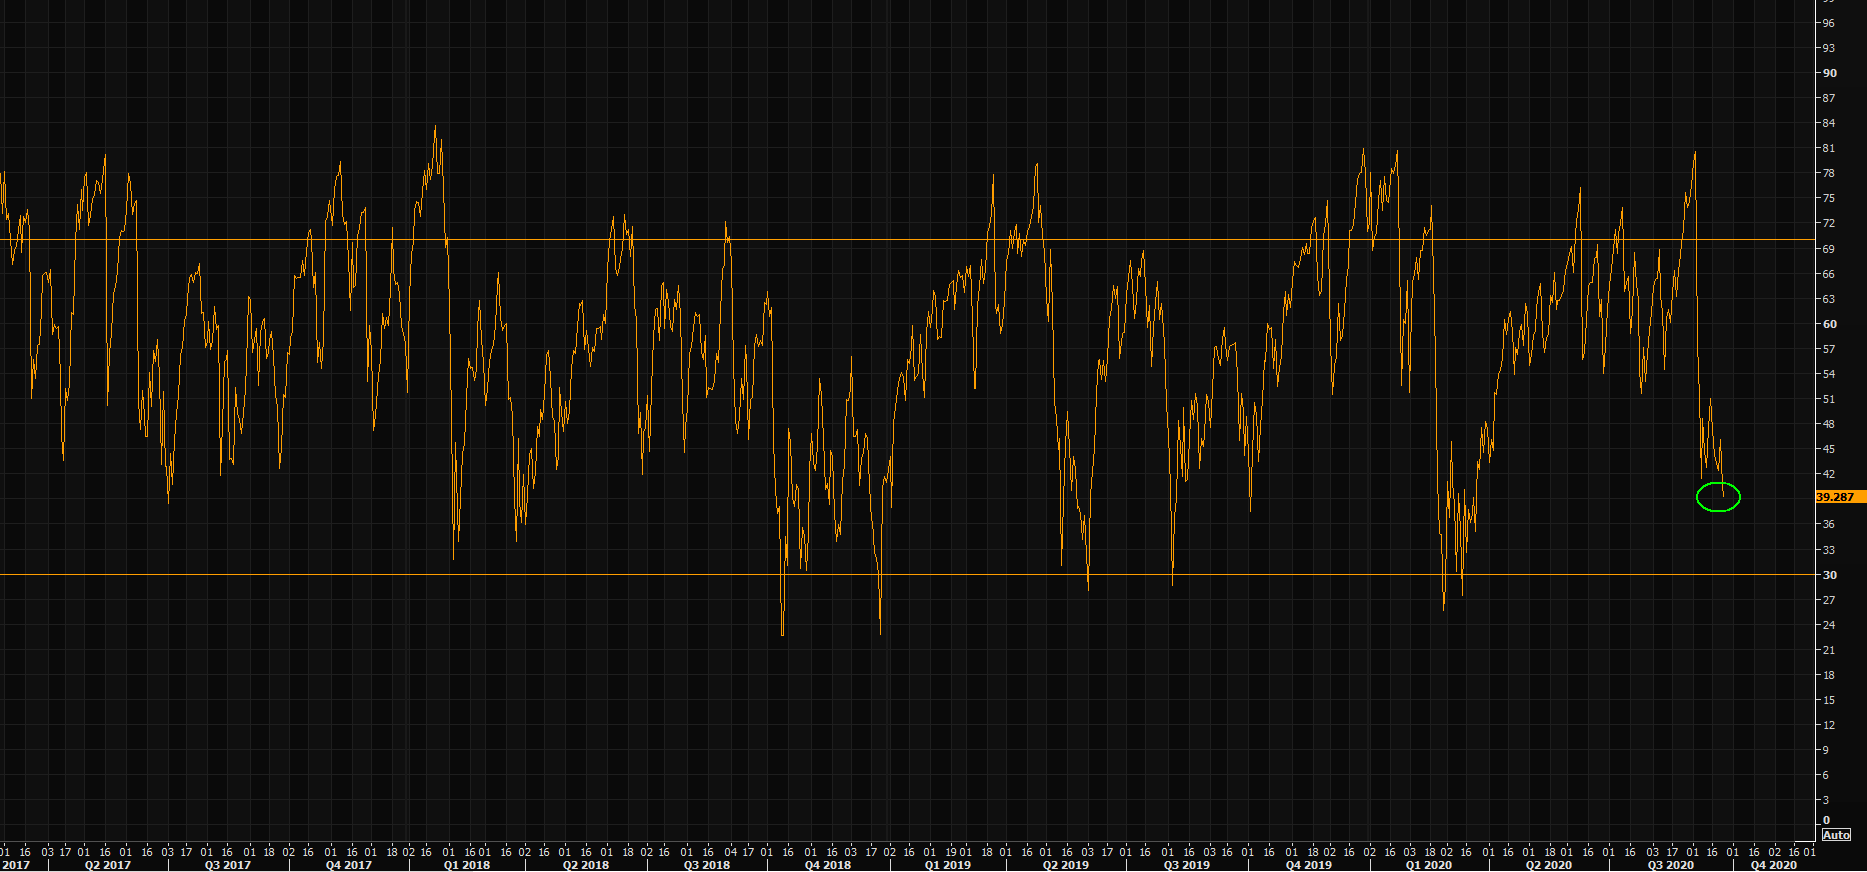 NASDAQ has not been this oversold since late March